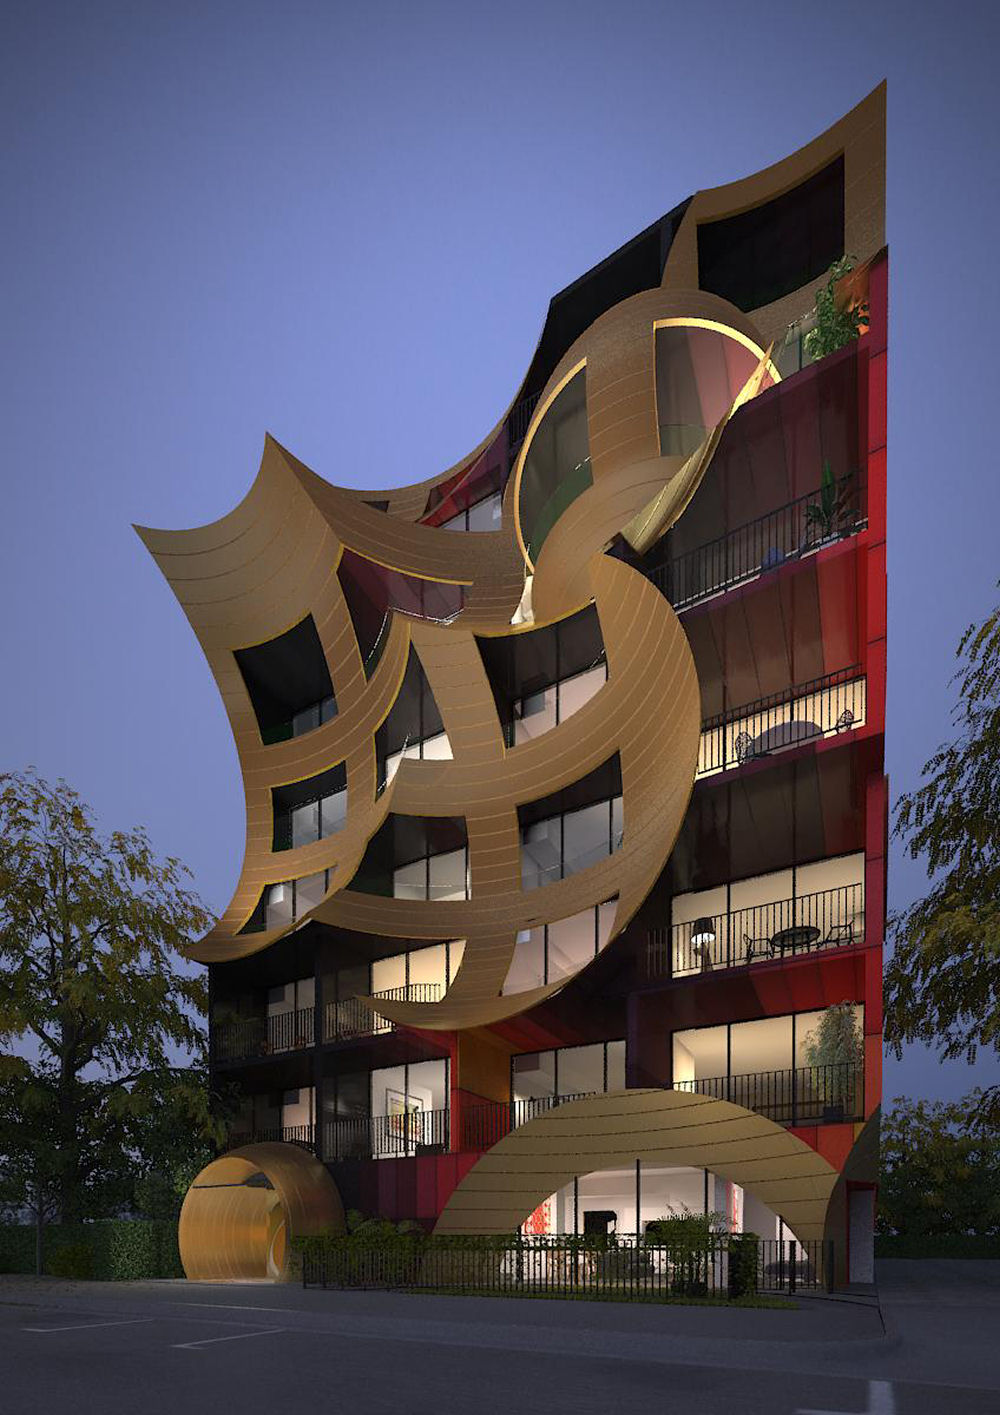 Orbis apartments by arm architecture for Architecture design company in australia